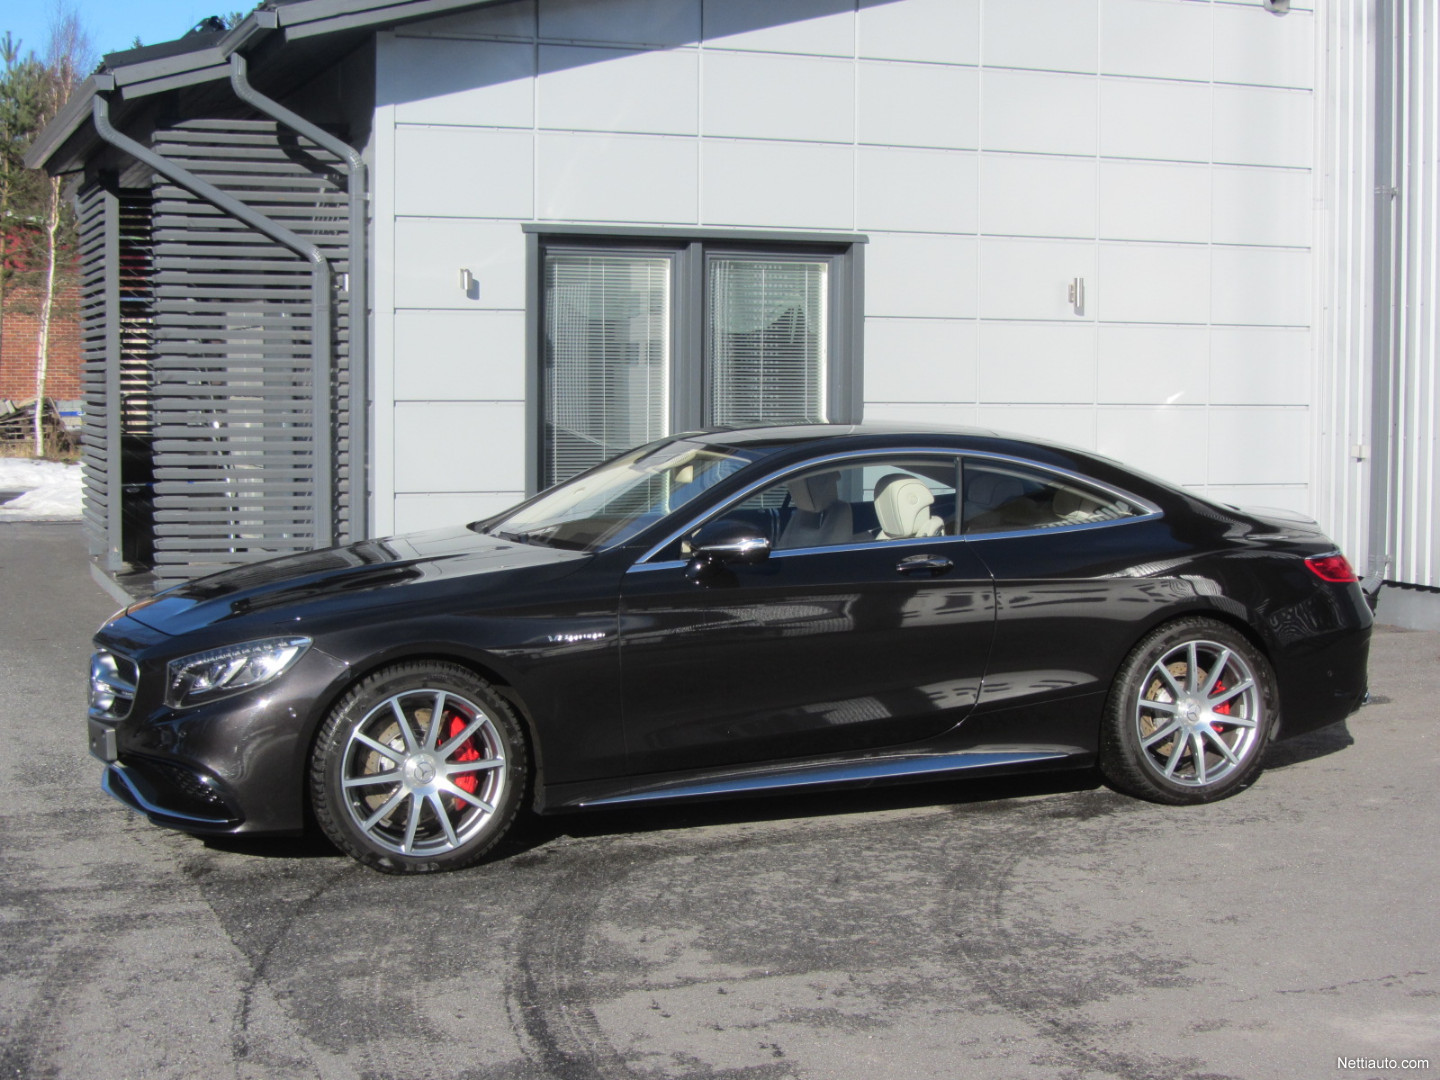 Mercedes benz s 63 amg coup 2014 used vehicle nettiauto for Mercedes benz remote start instructions